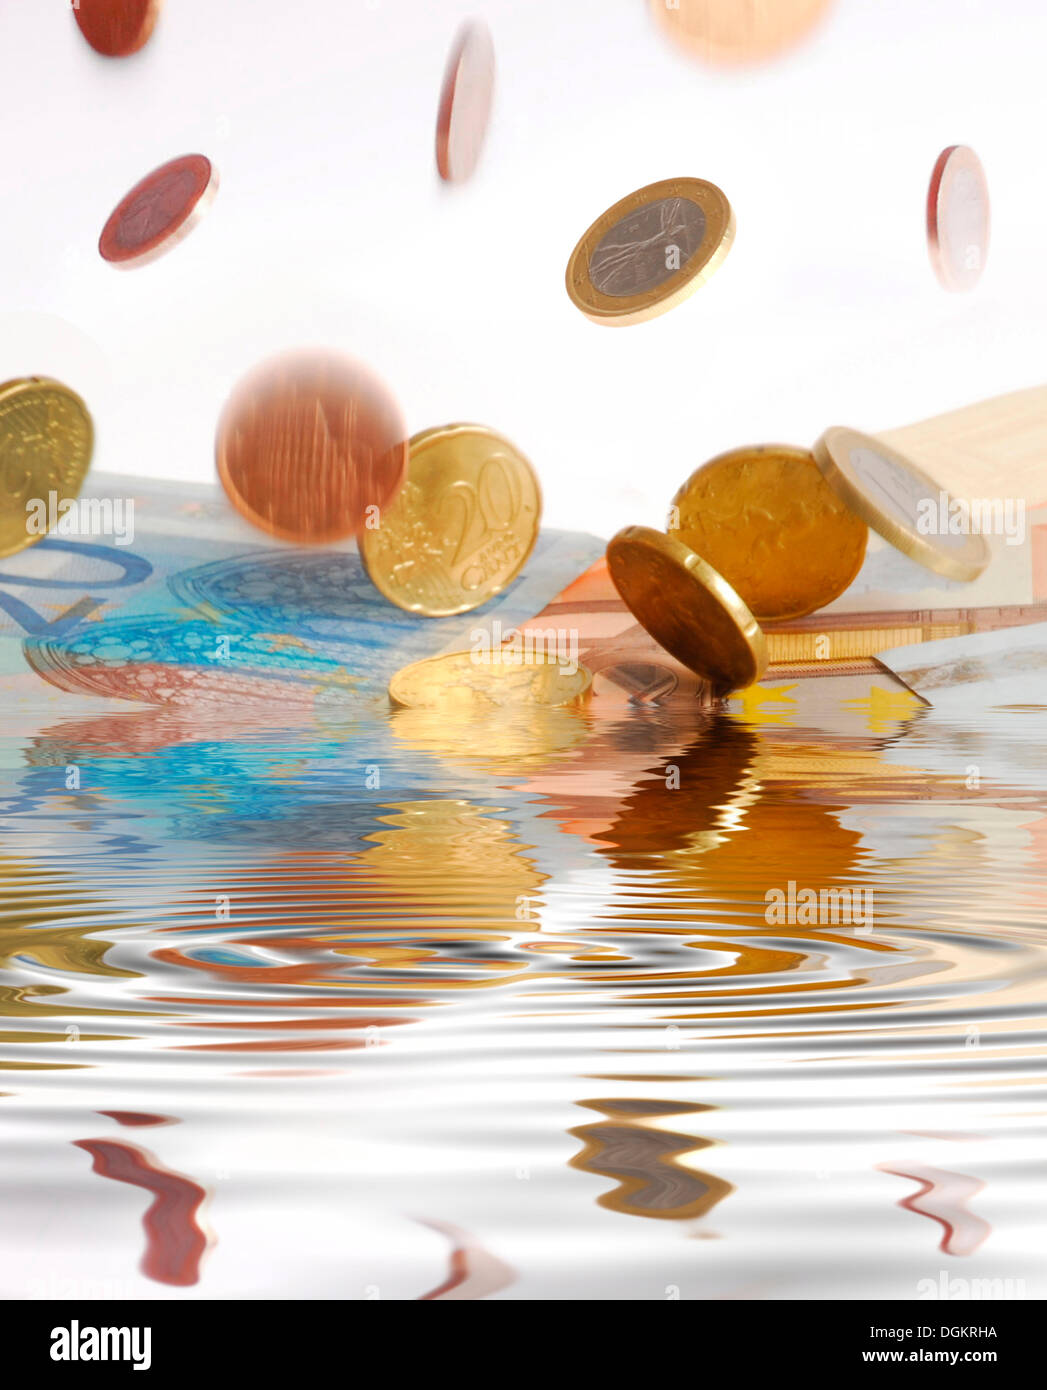 Falling coins, symbolic image for a winfall, falling into water Stock Photo